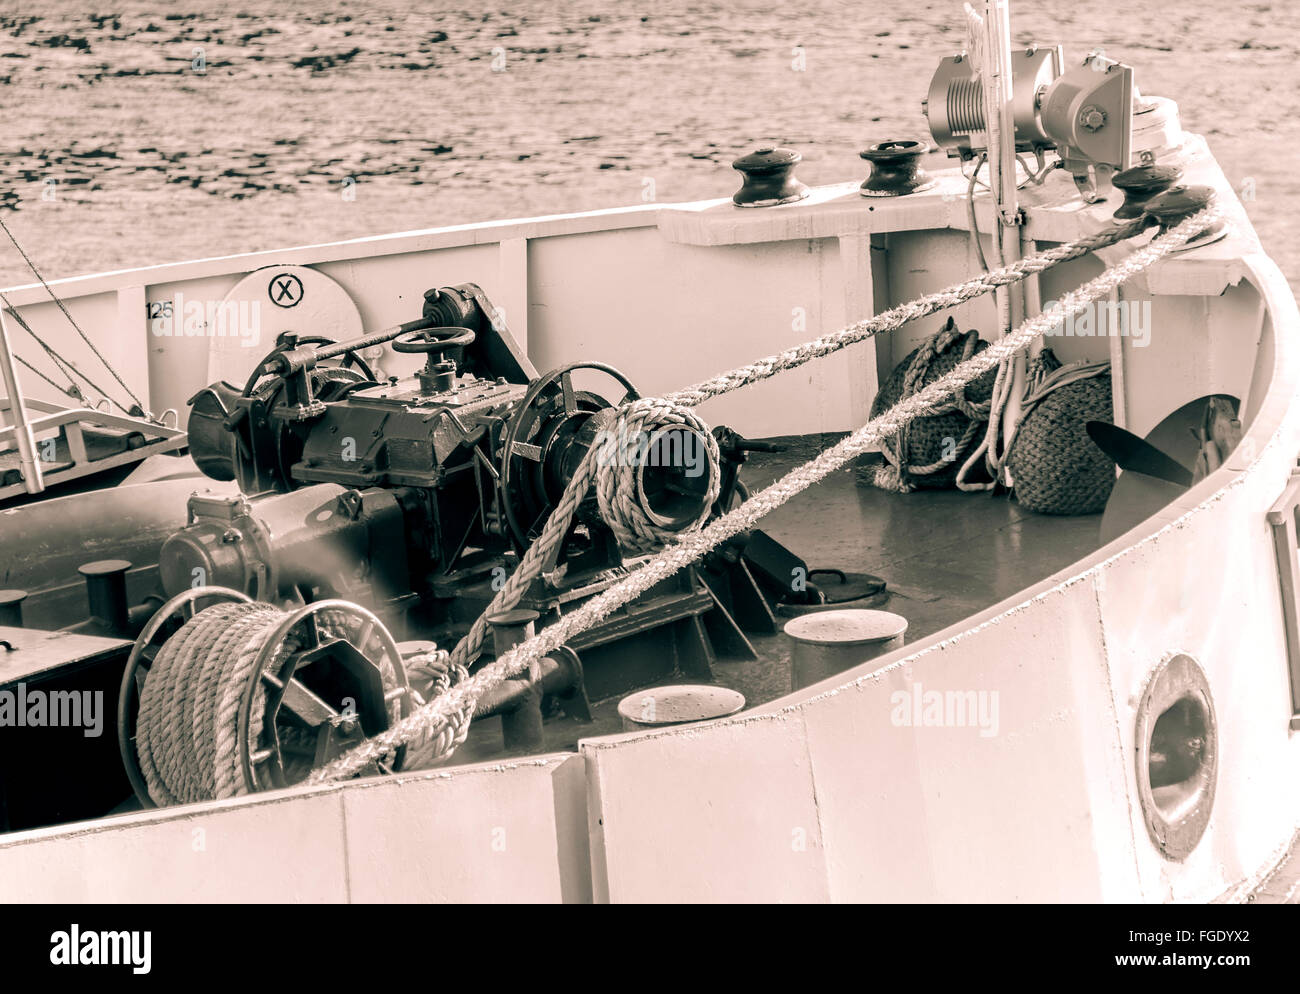 Styling photo about equipment on bow of ship - Stock Image